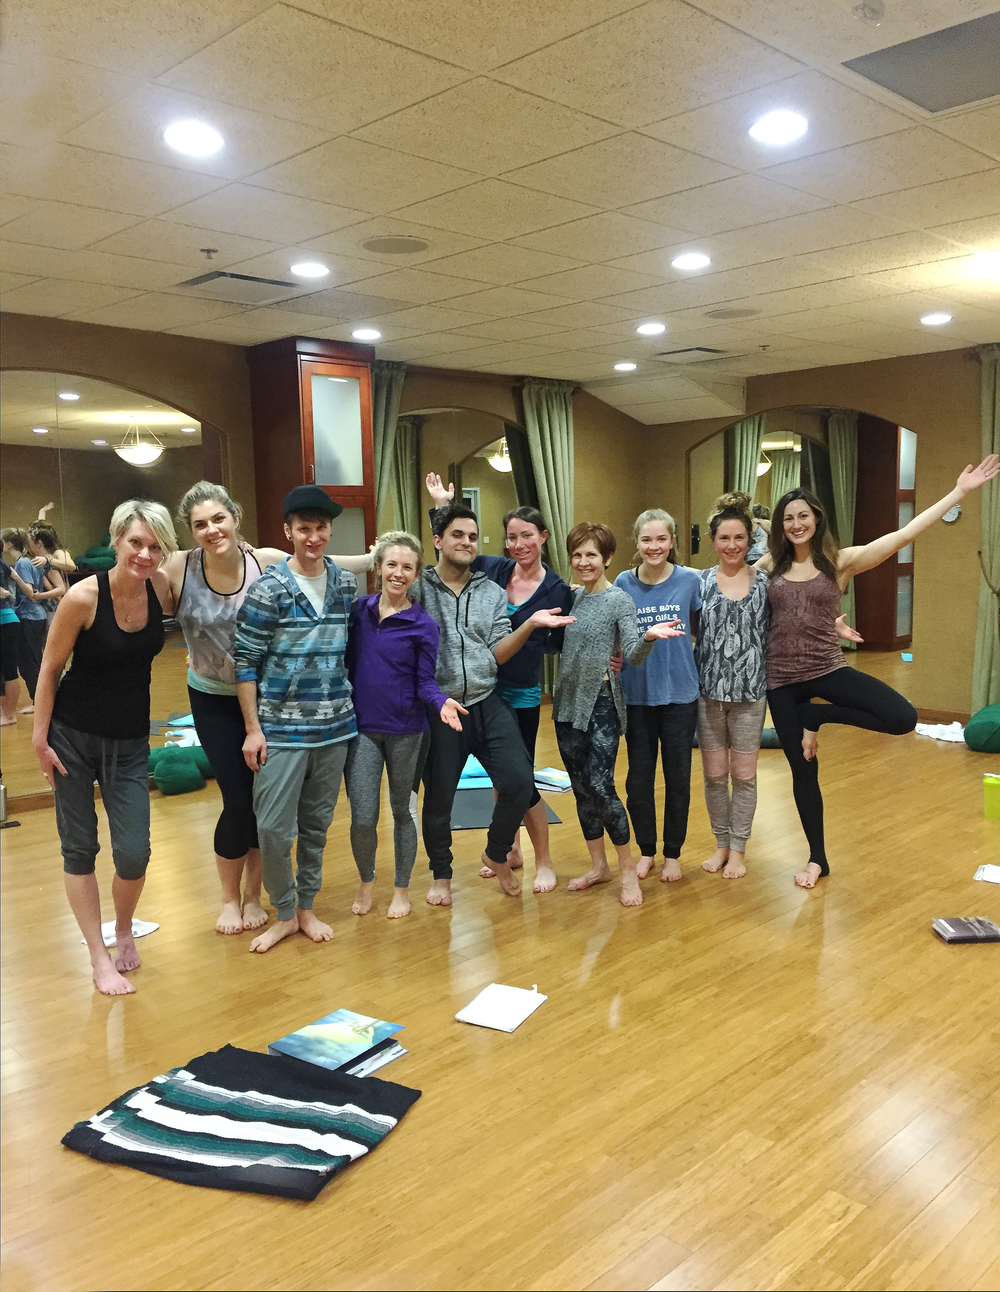 Yoga Teacher Training Class 2.25.2016 | From left to right: Julie, Chrissy, Cody, Jen, Jan, Becky, Constance, Brooklyn, Toni, Davie